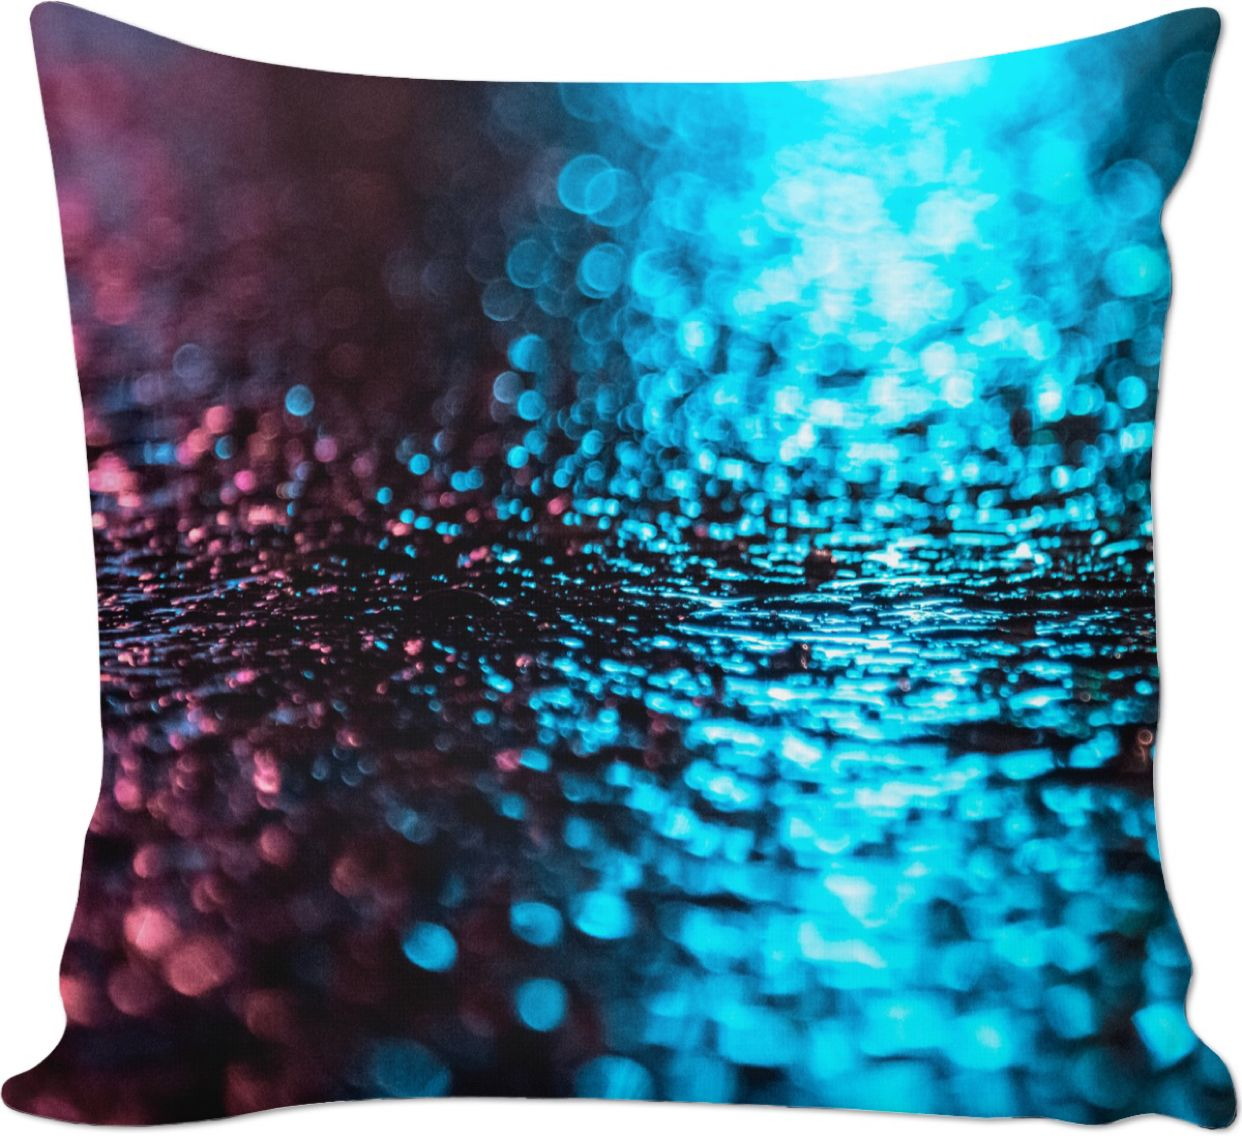 Pleasing Water Shimmer Couch Pillow Expressive Designs Couch Caraccident5 Cool Chair Designs And Ideas Caraccident5Info